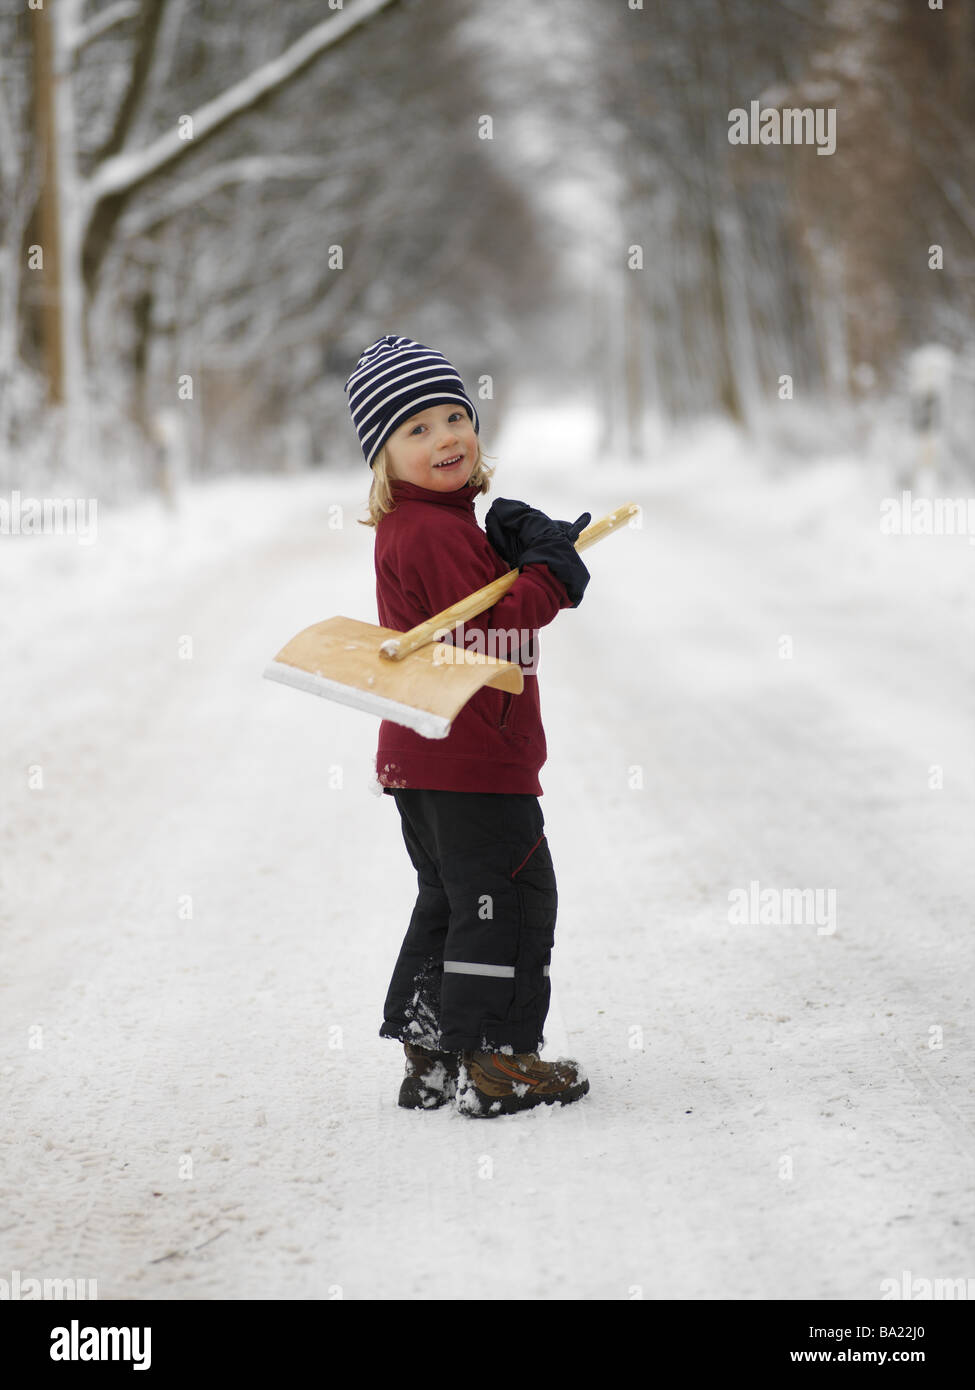 Forest path boy winter-clothing snow-shovel carries cheerfully 4 years child blond ski-pants sweaters cap wood-shovel - Stock Image